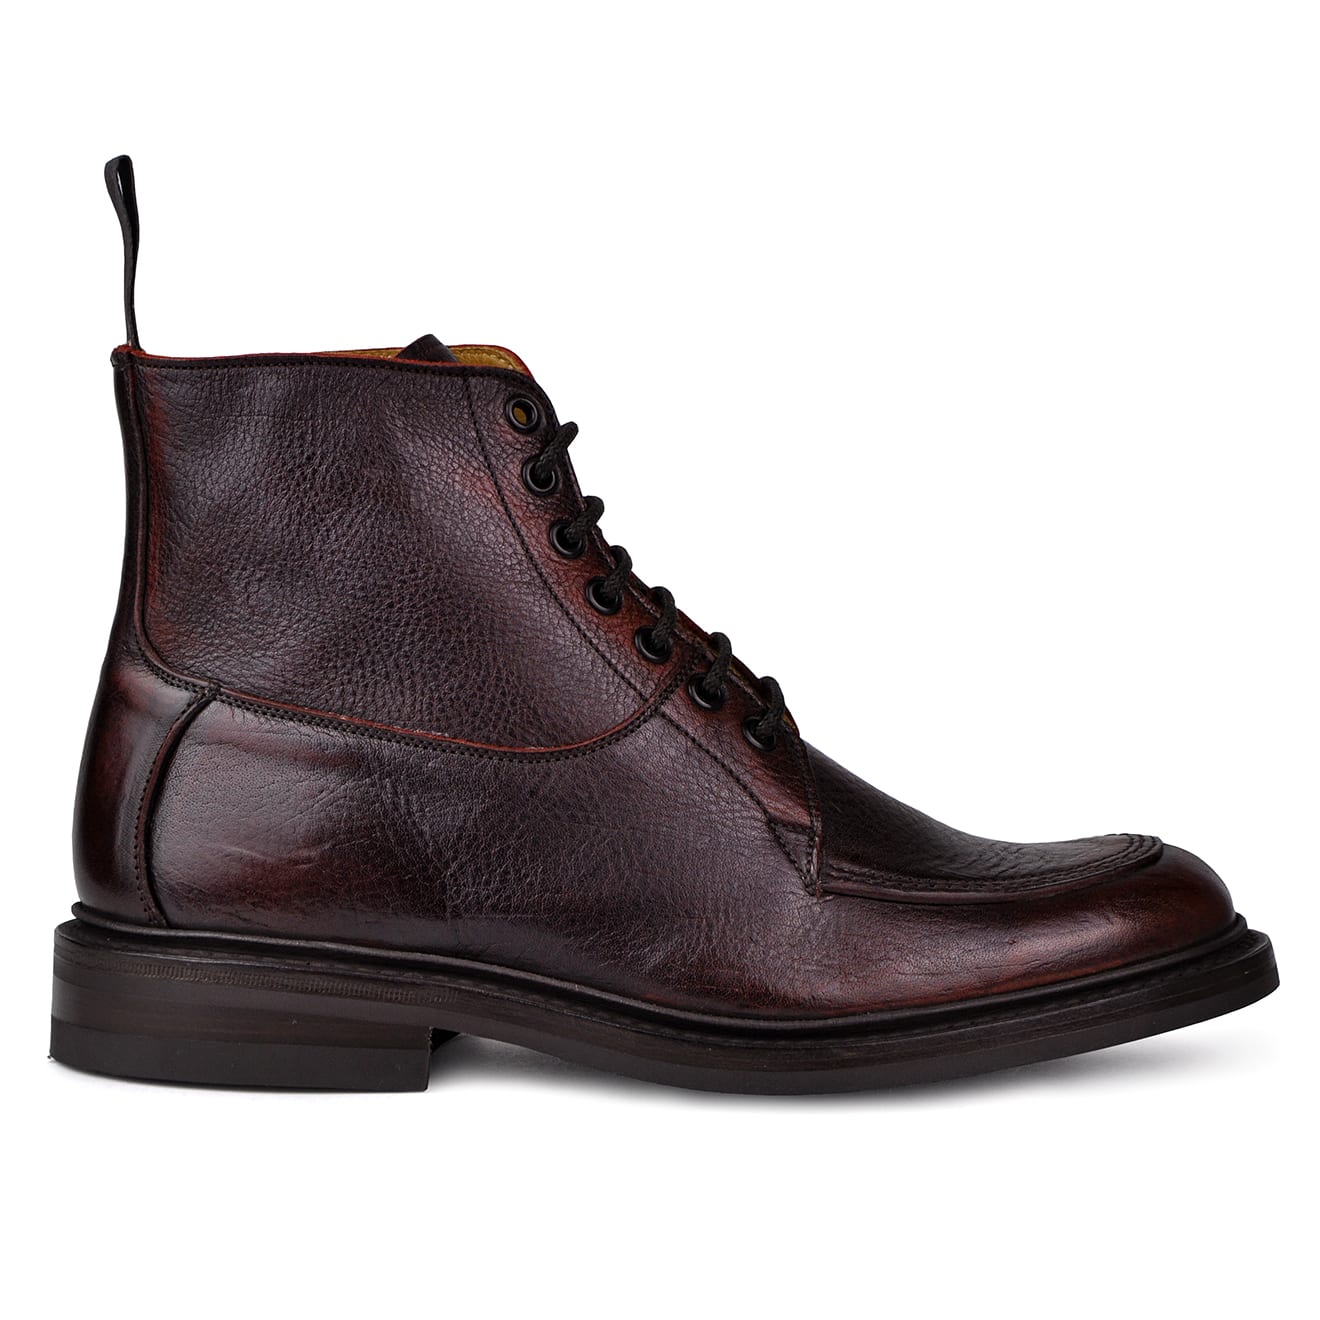 Trickers leo sign kudu dainite sole boot Burgandy